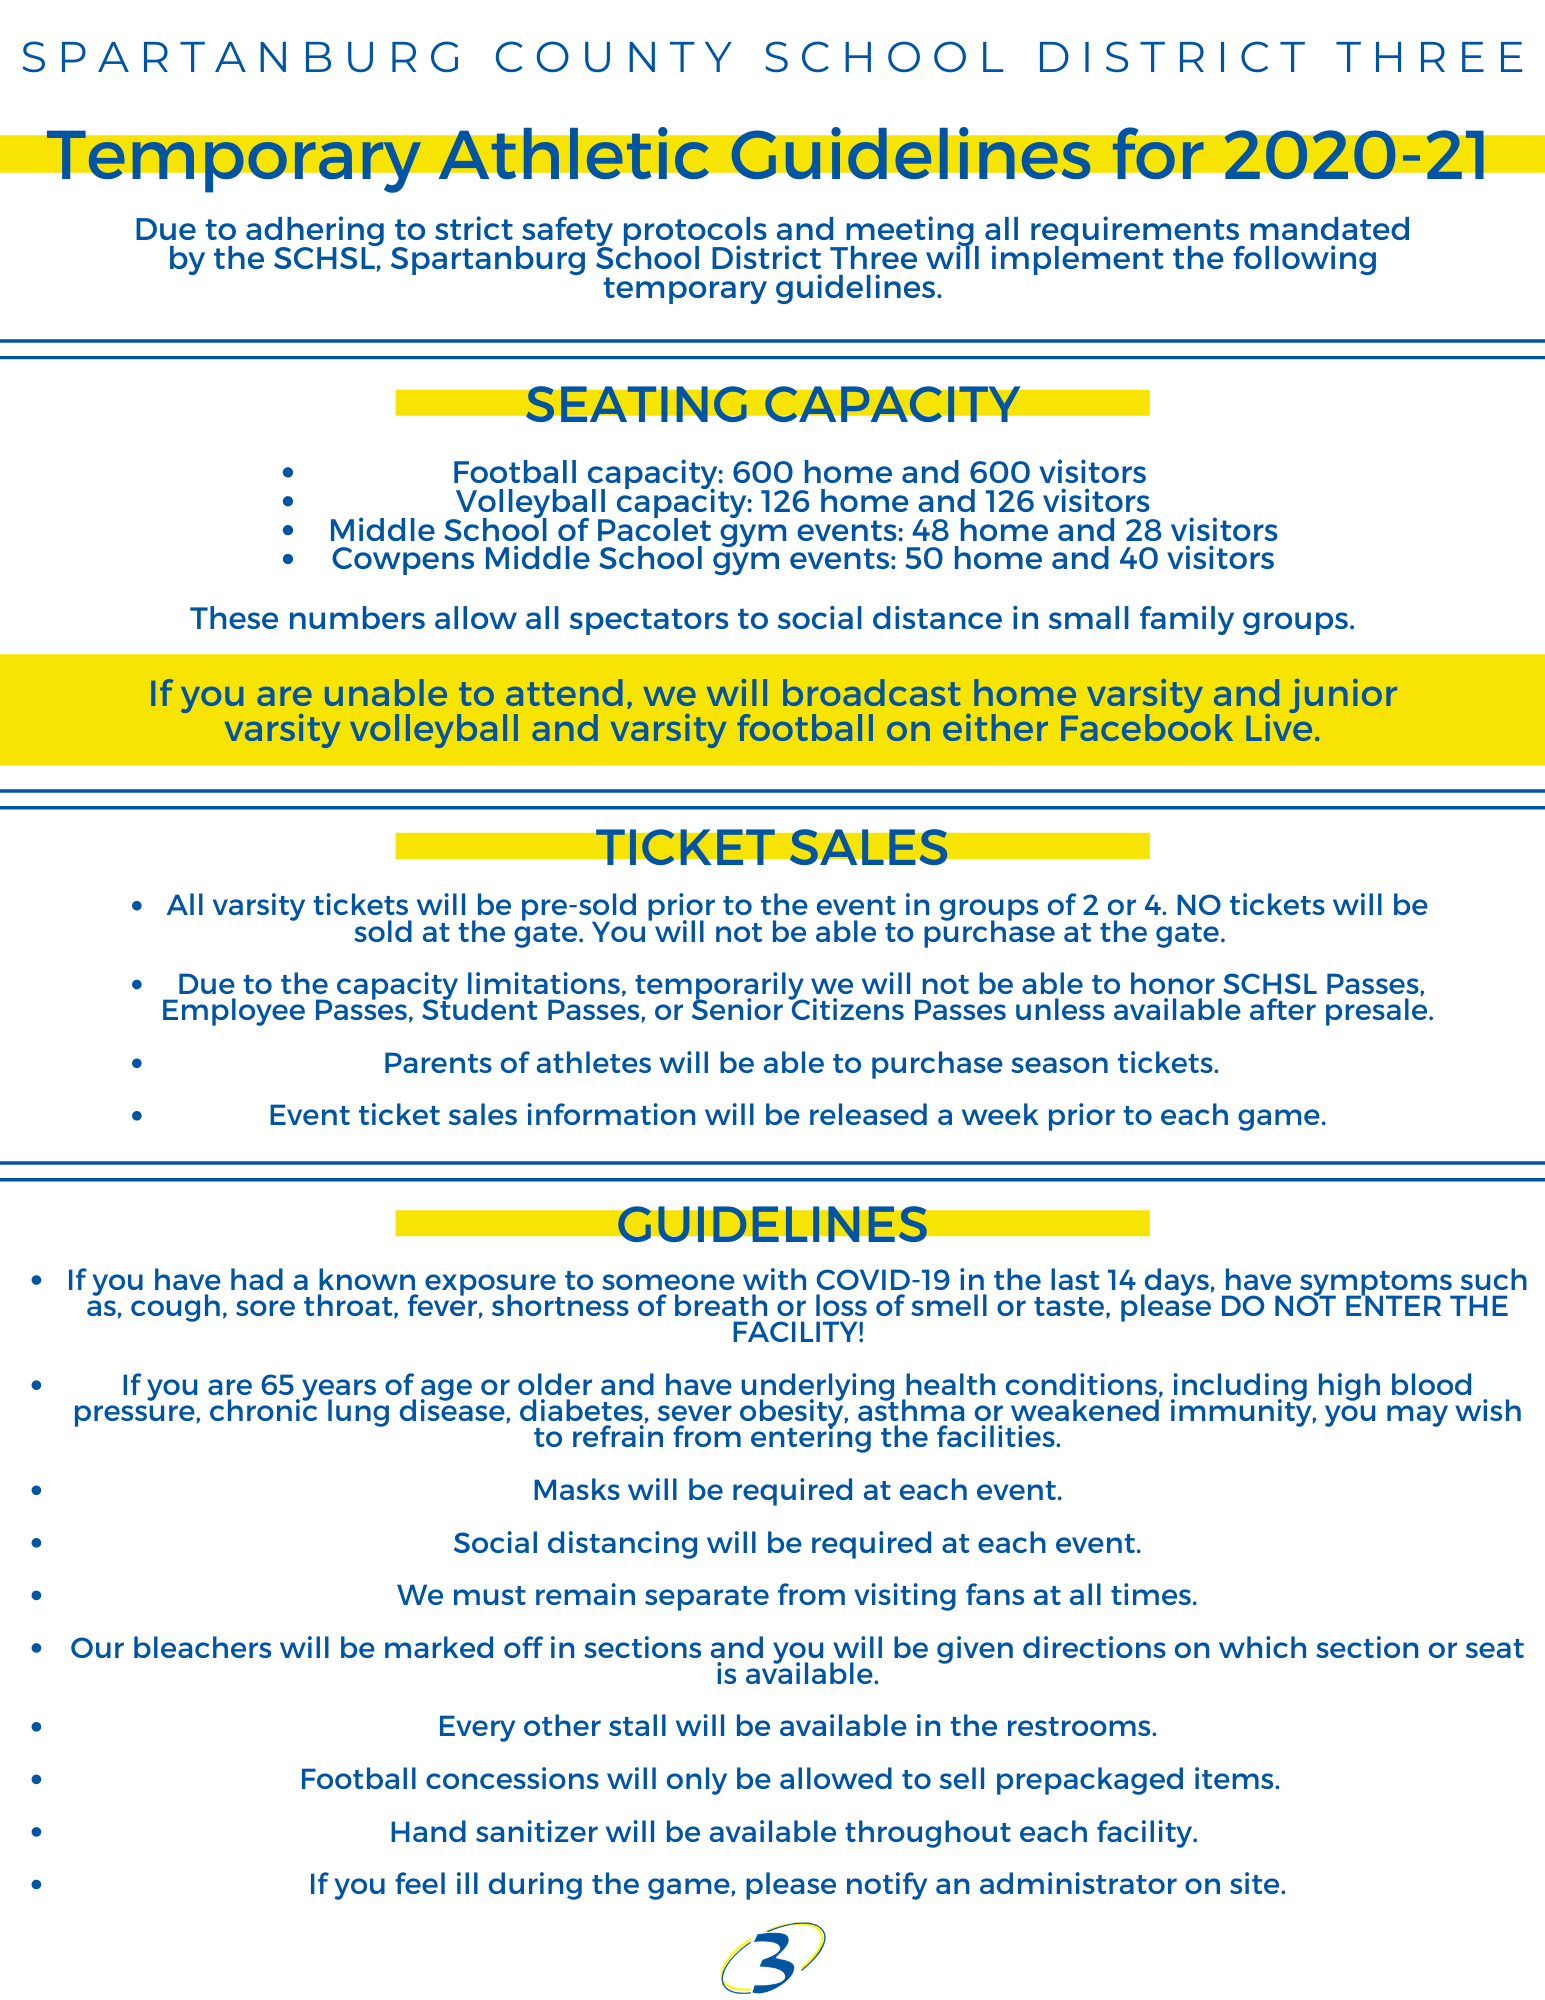 Due to adhering to strict safety protocols and meeting all requirements mandated by the SCHSL, Spartanburg School District Three will implement the following temporary guidelines. Seating Capacity •Football Capacity: 600 Home and 600 Visitors •Volleyball Capacity: 126 Home and 126 Visitors •Middle School of Pacolet gym events: 48 Home and 28 Visitors •Cowpens Middle School gym events: 50 Home and 40 Visitors If you are unable to attend, we will broadcast home varsity and junior varsity volleyball and varsity football on either Facebook live or YouTube.   Ticket Sales •All varsity tickets will be pre-sold prior to the event in groups of 2 or 4. NO tickets will be sold at the gate.  •Due to the capacity limitations, temporarily we will not be able to honor SCHSL Passes, Employee Passes, student passes or Senior Citizens Passes until after presale ends.   •Parents of athletes will be able to purchase season tickets.    •Event tickets  Guidelines •If you have had had a known exposure to someone with COVID-19 in the last 14 days, have symptoms such as, cough, sore throat, fever, shortness of breath or loss of smell or taste please DO NOT ENTER THE FACILITY! •If you are 65 years of age or older and have underlying health conditions including high blood pressure, chronic lung disease, diabetes, sever obesity, asthma or weakened immunity, you may wish to refrain from entering the facilities •Mask will be required at each event. •Social Distancing will be required at each event. •We must remain separate from visiting fans at all times. •Our bleachers will be marked off in sections and you will be given directions on which section or seat is available. •Every other stall will be available in the restrooms. •Football Concessions will only be allowed to sale prepackaged items.   •Hand sanitizer will be available throughout each facility •If you feel ill during the contest, please notify an administrator on site.